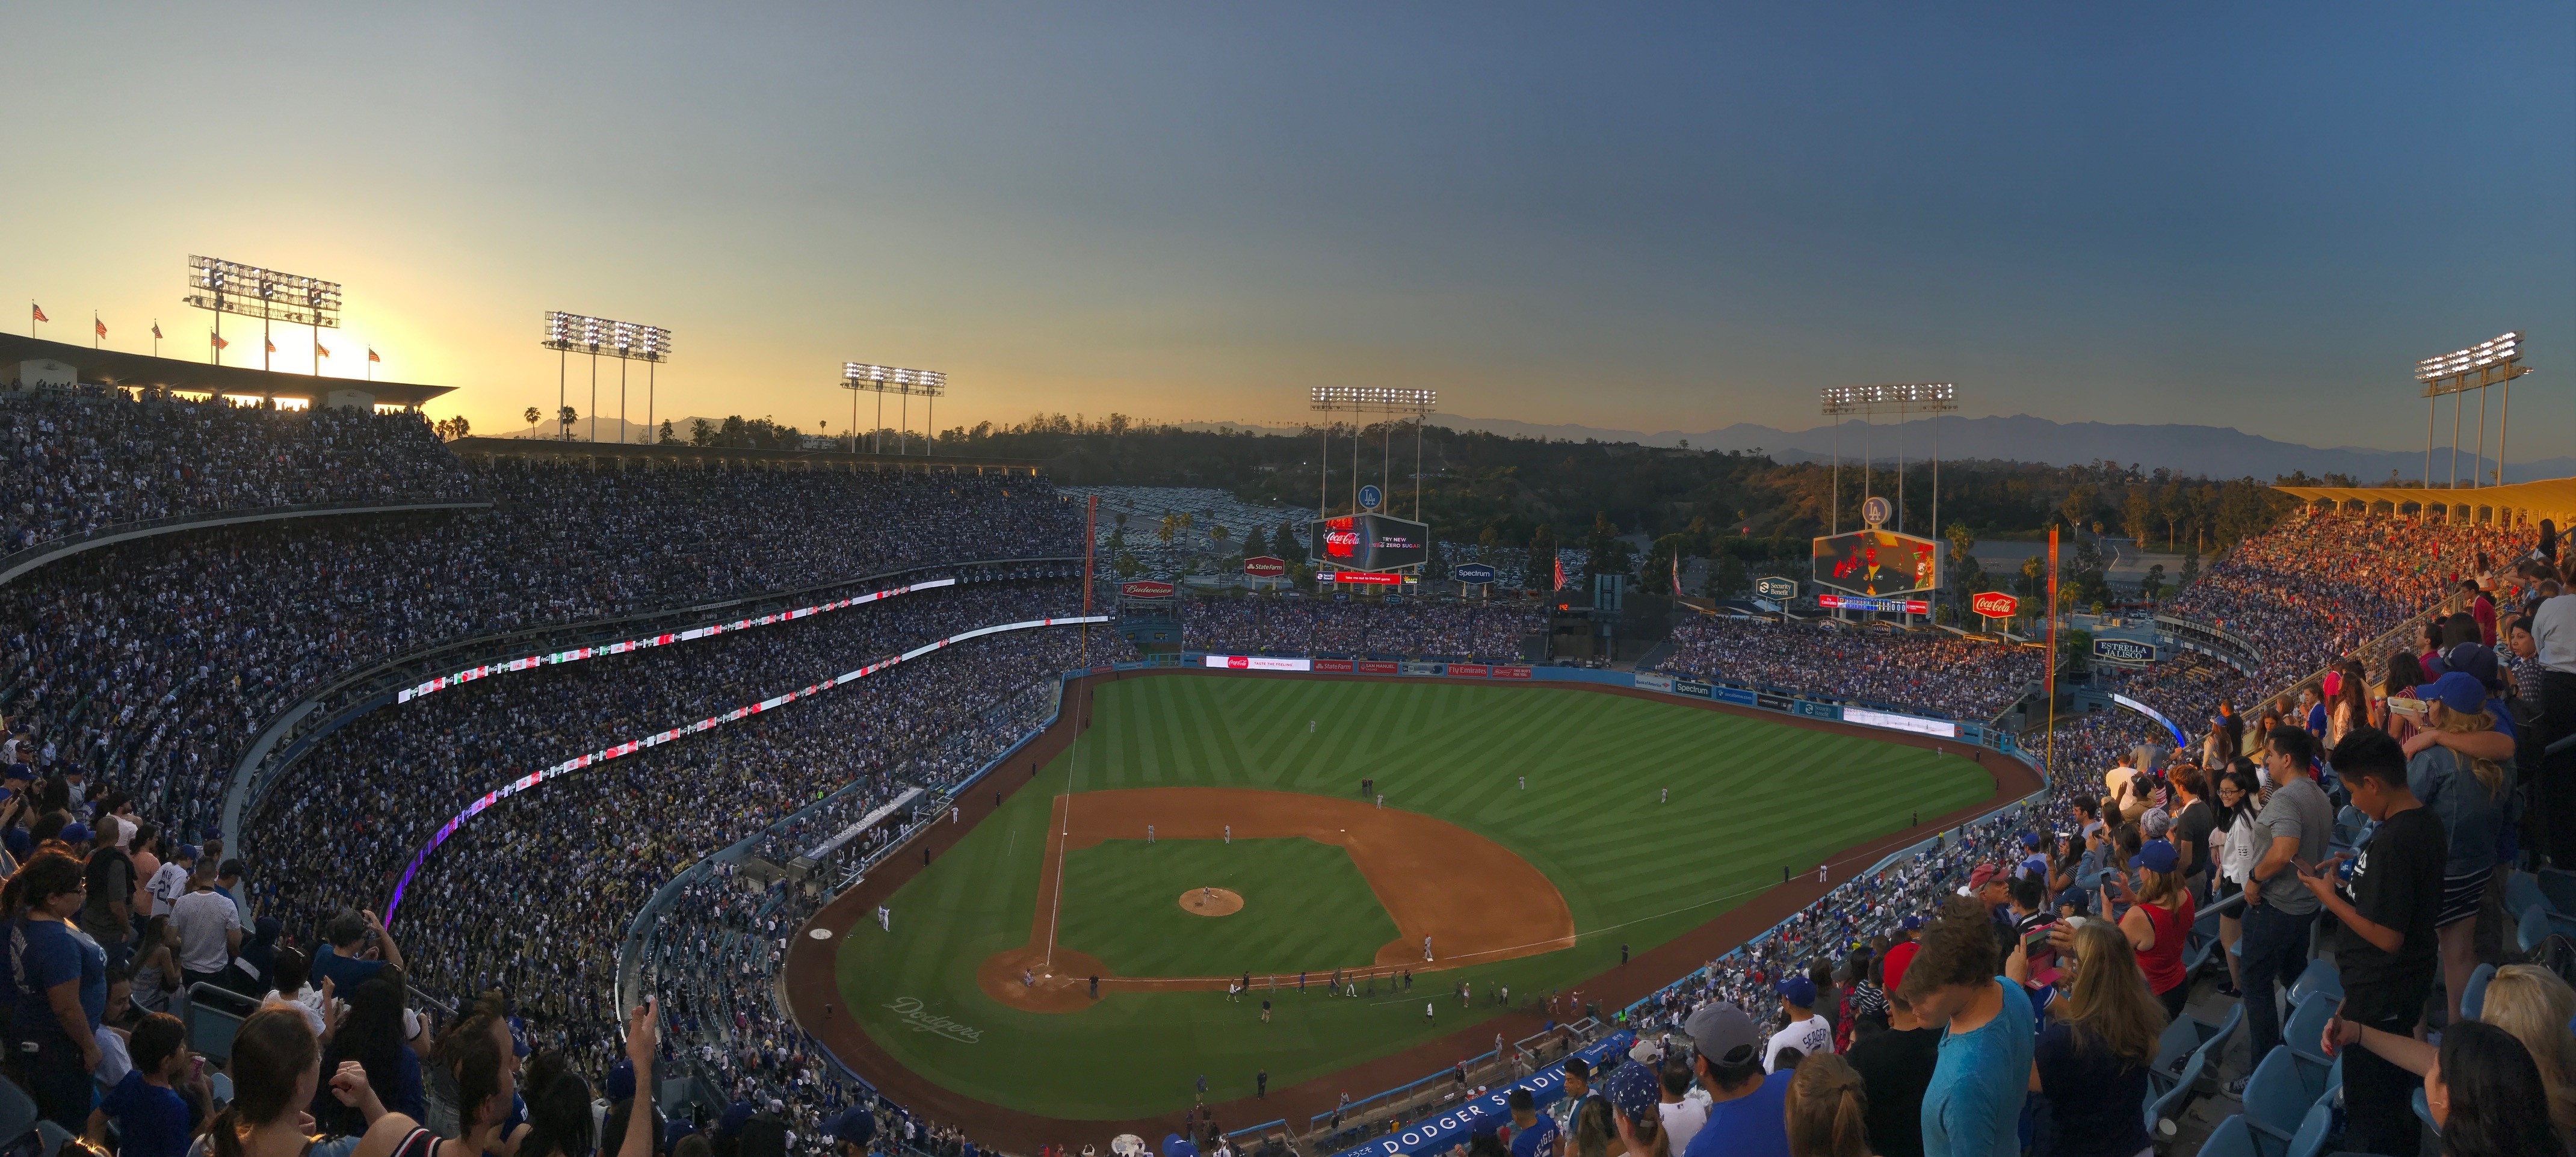 What S Up Dodger Fans Feats Of Strength And Other Notes